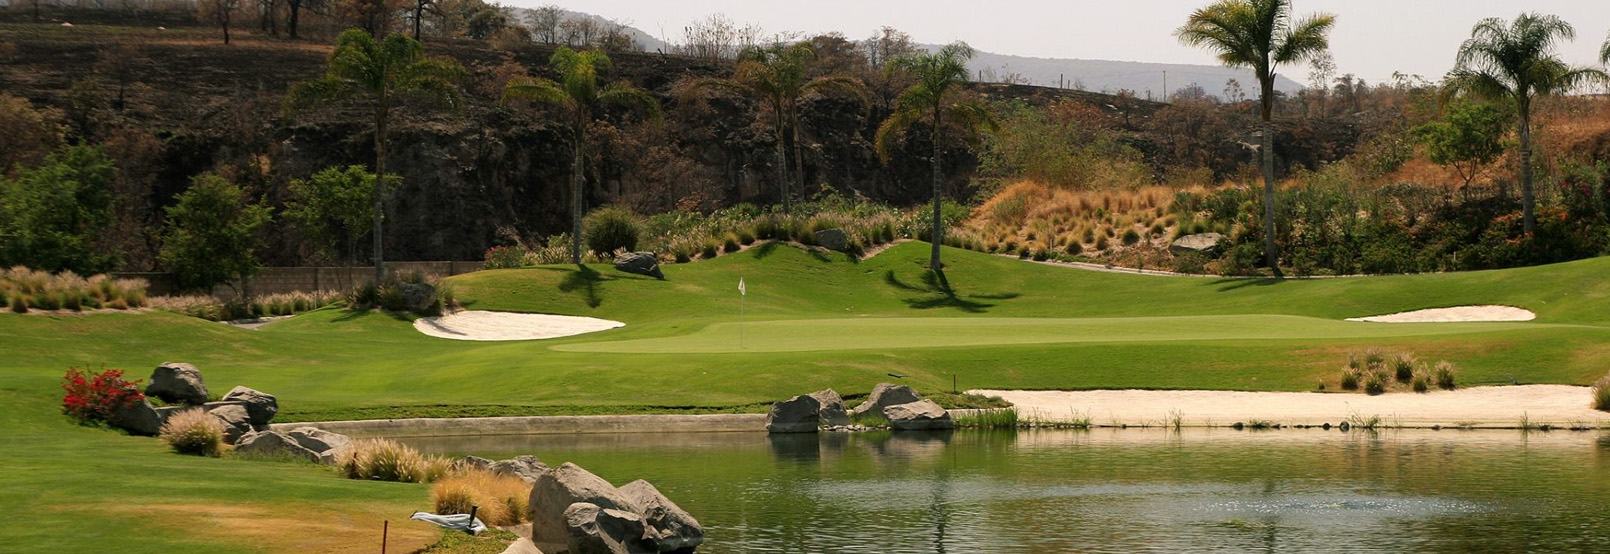 Las Lomas Club de Golf